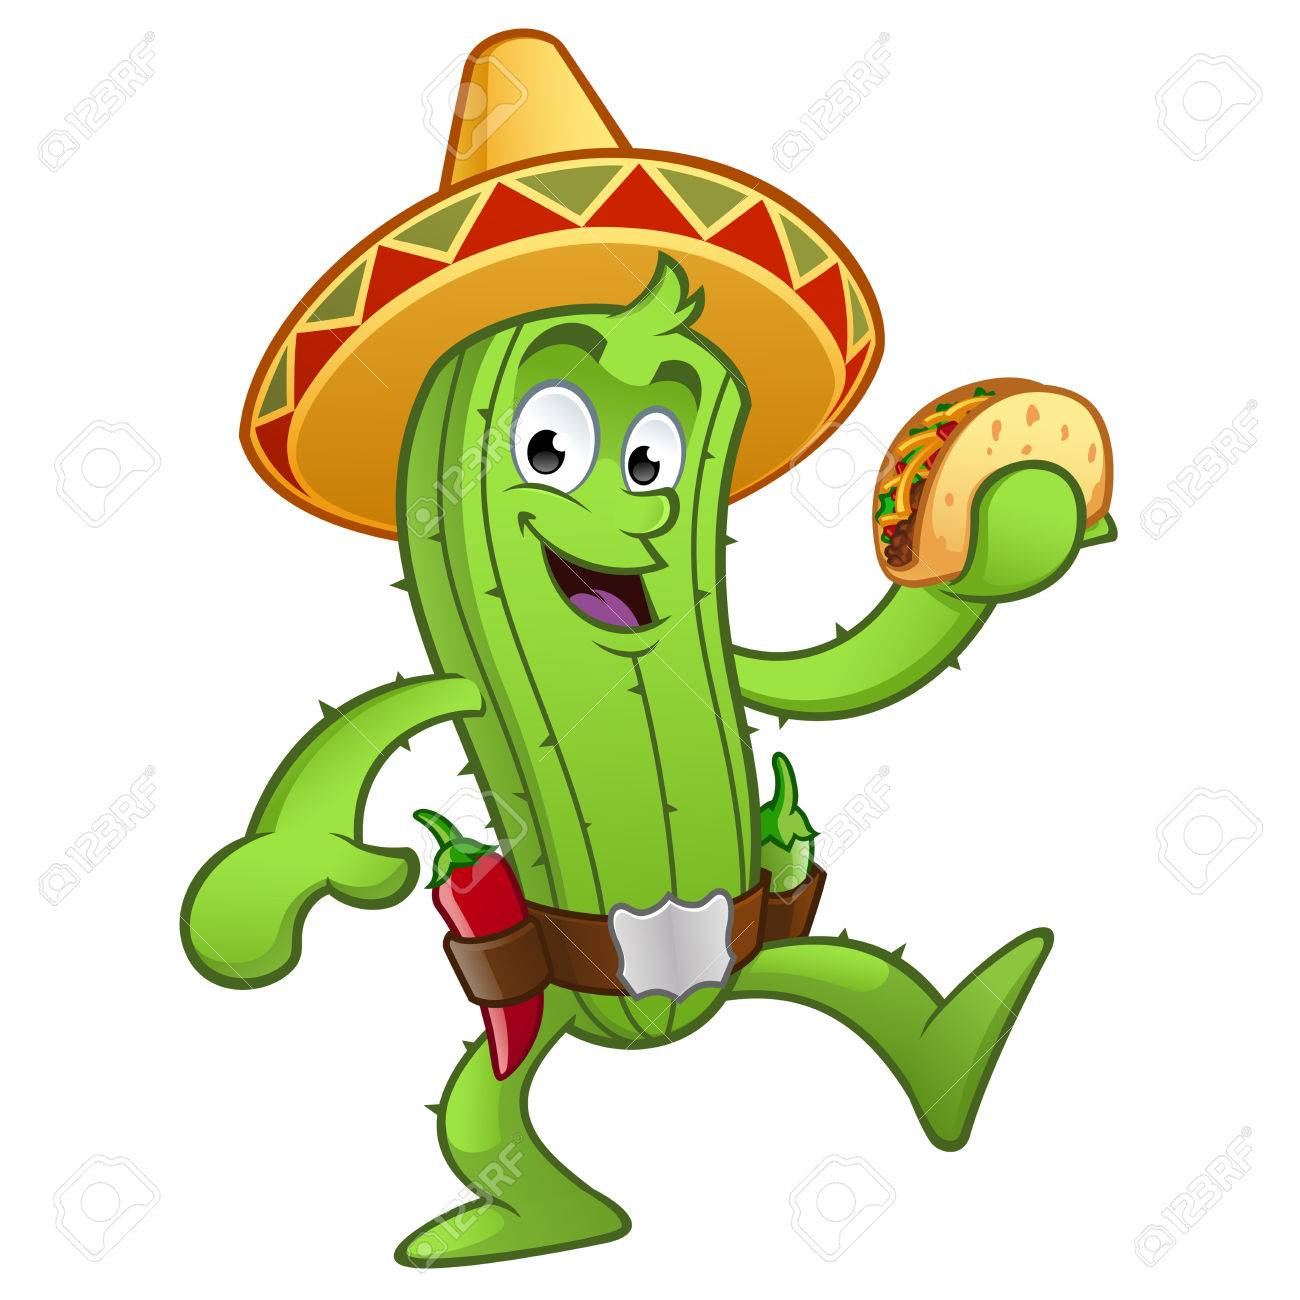 Sympathetic Mexican cactus with a taco in her hand - 58662806